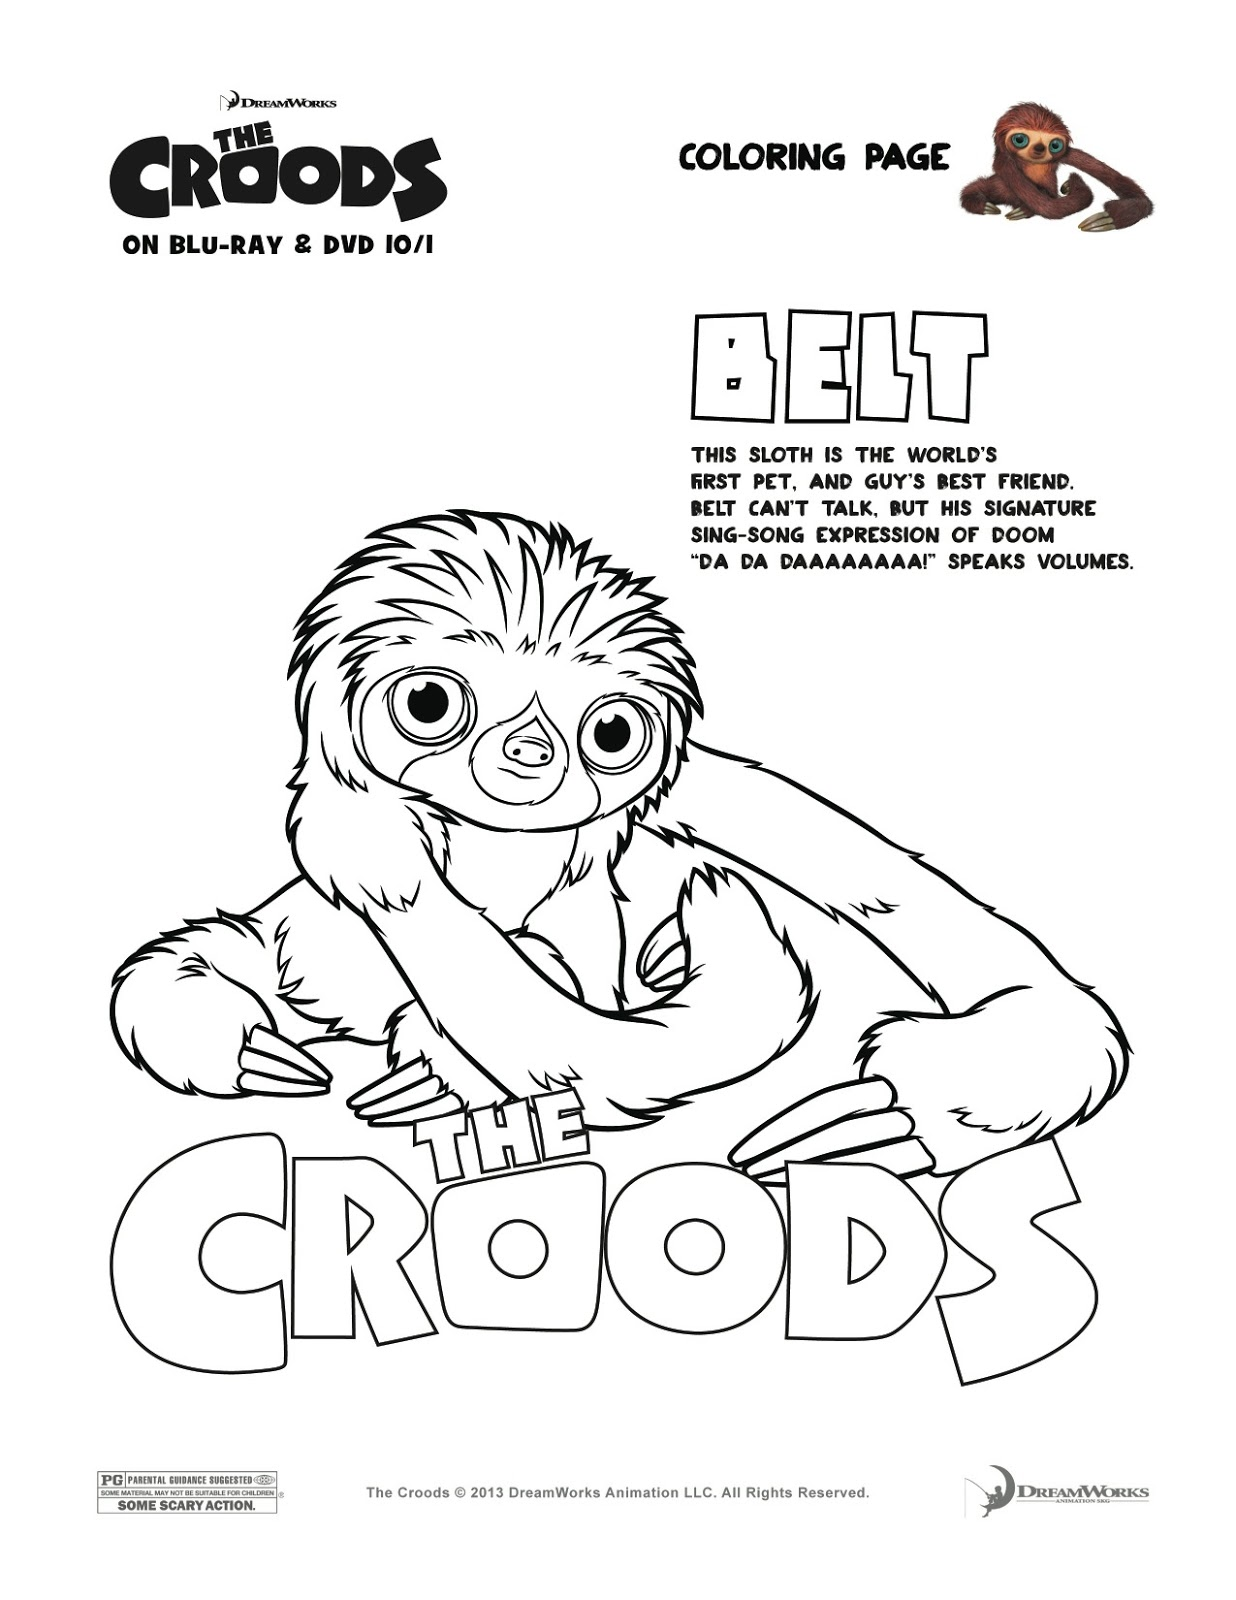 In Honor Of The Release Croods To Blu Ray And DVD On October 1st Enjoy These Fun Activities A Video Clip Entitled Croodaceous Moments